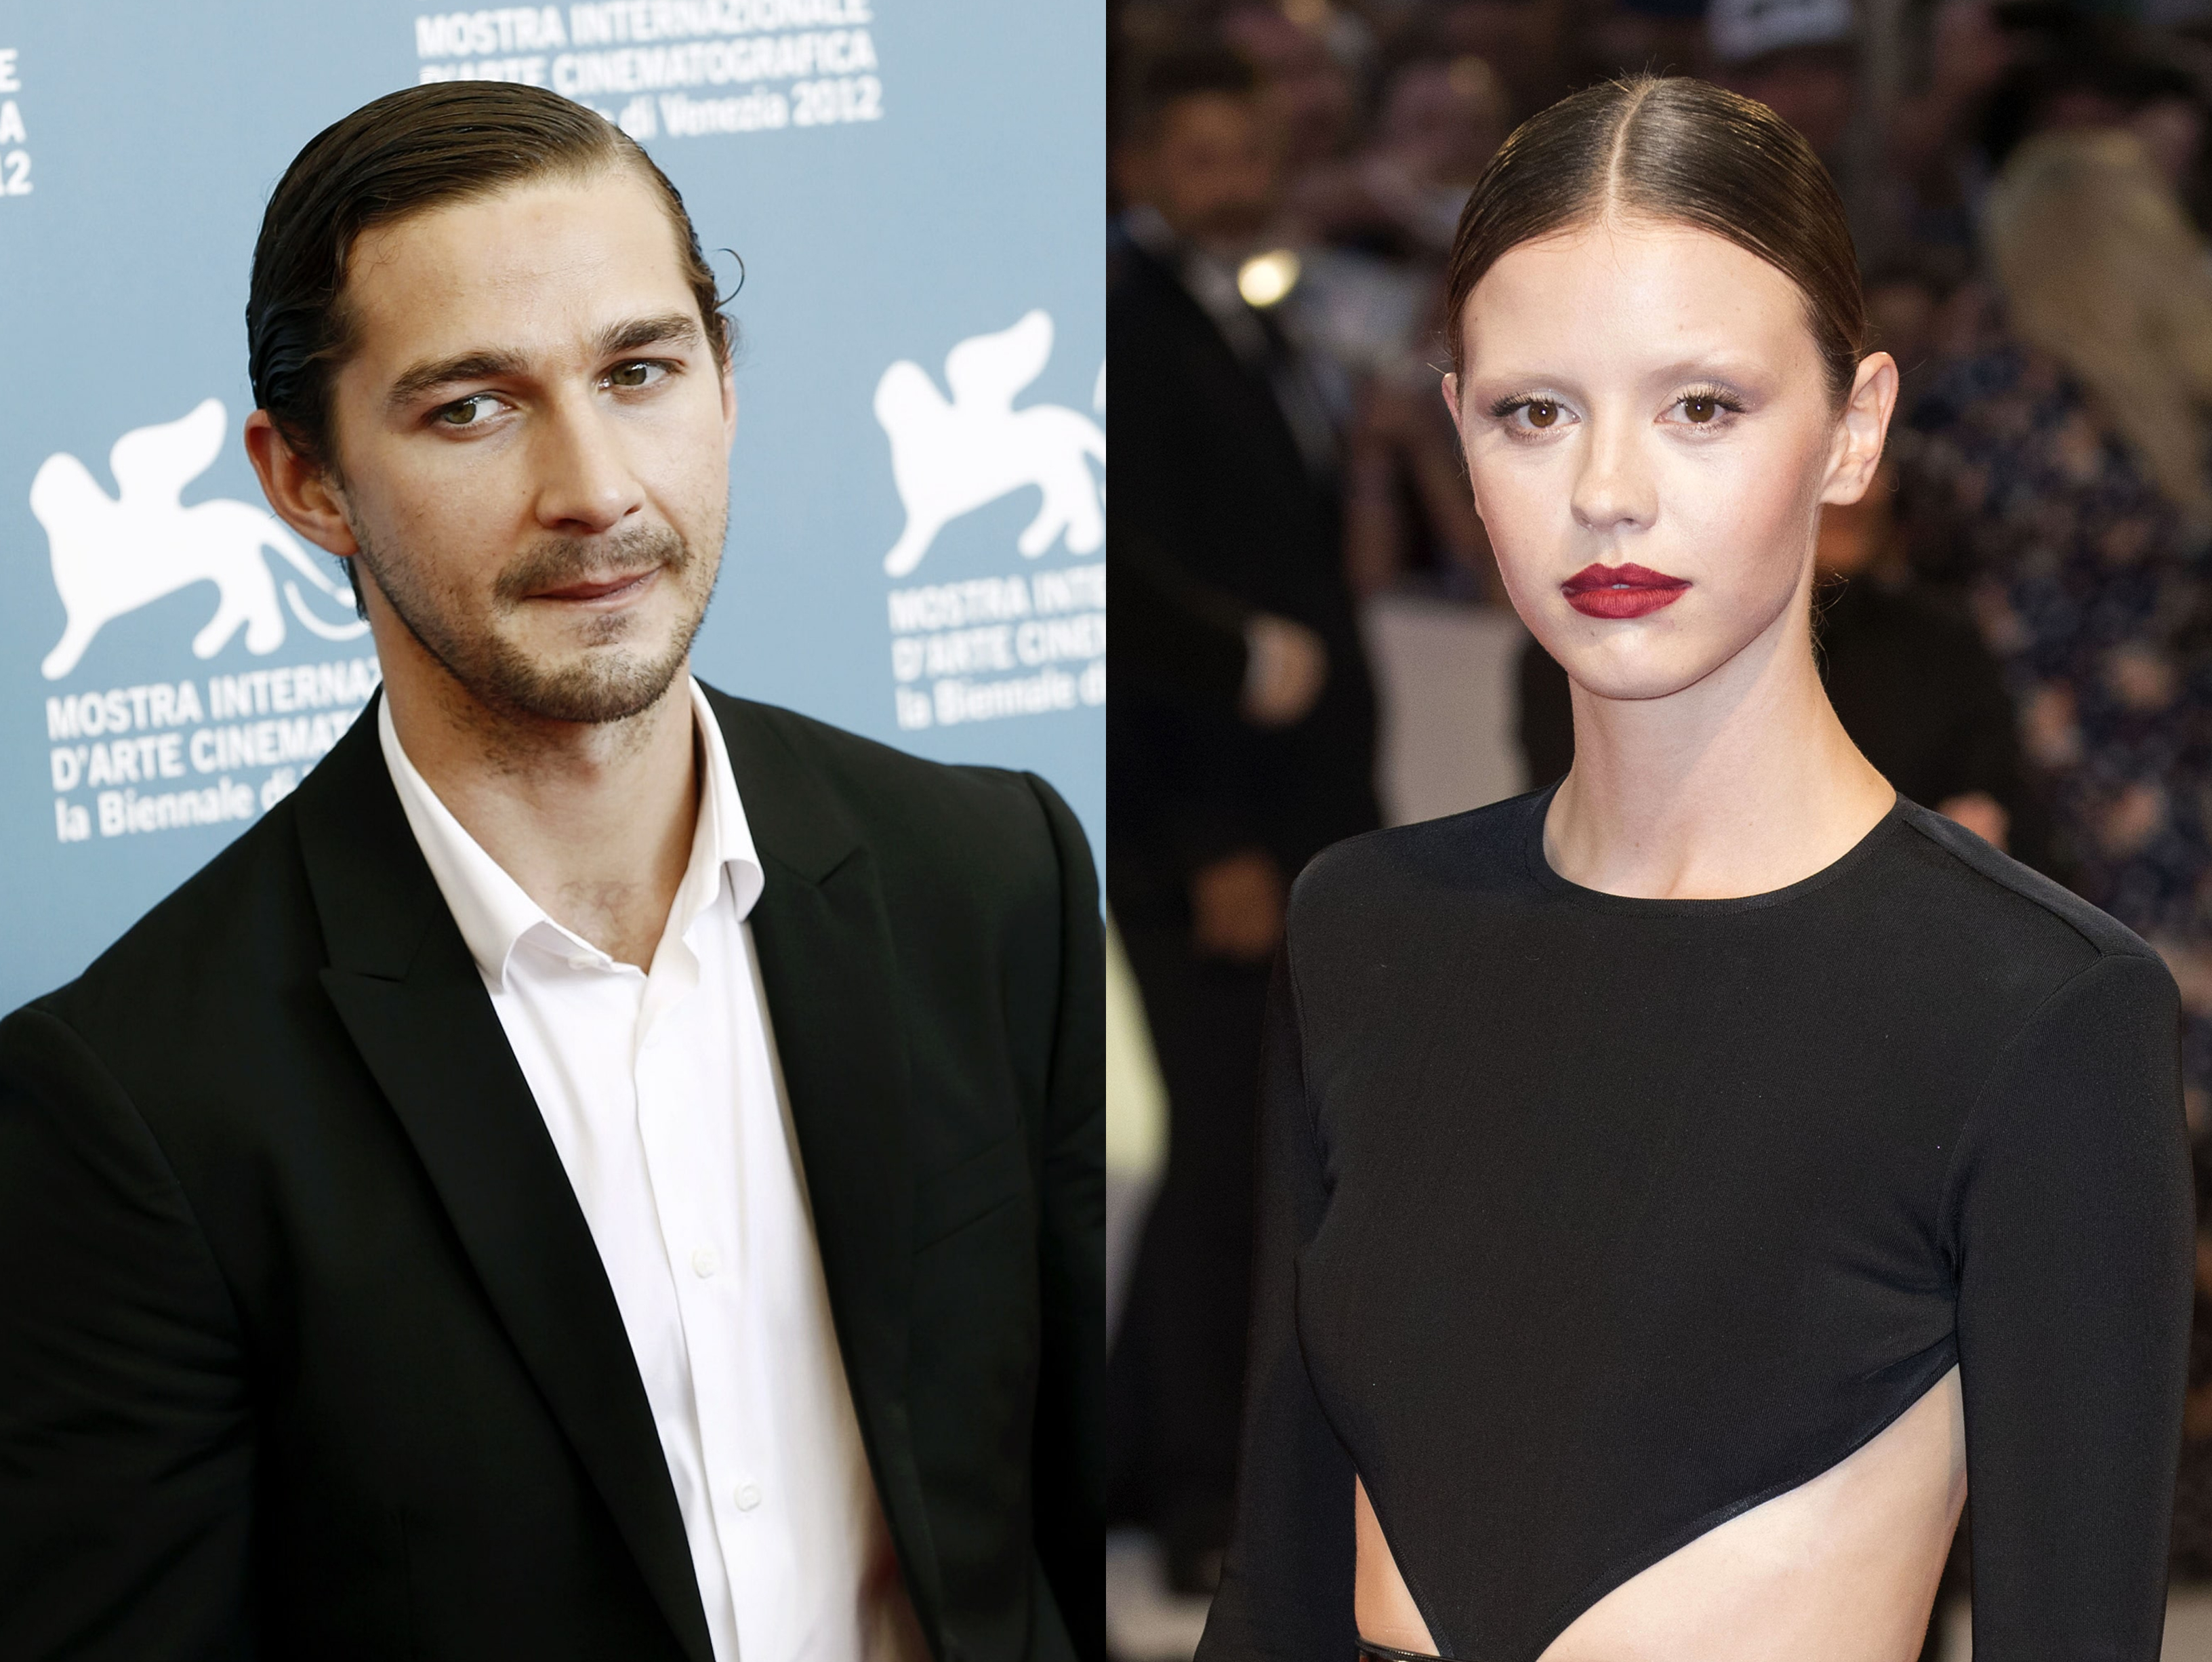 Who is shia labeouf dating 2019